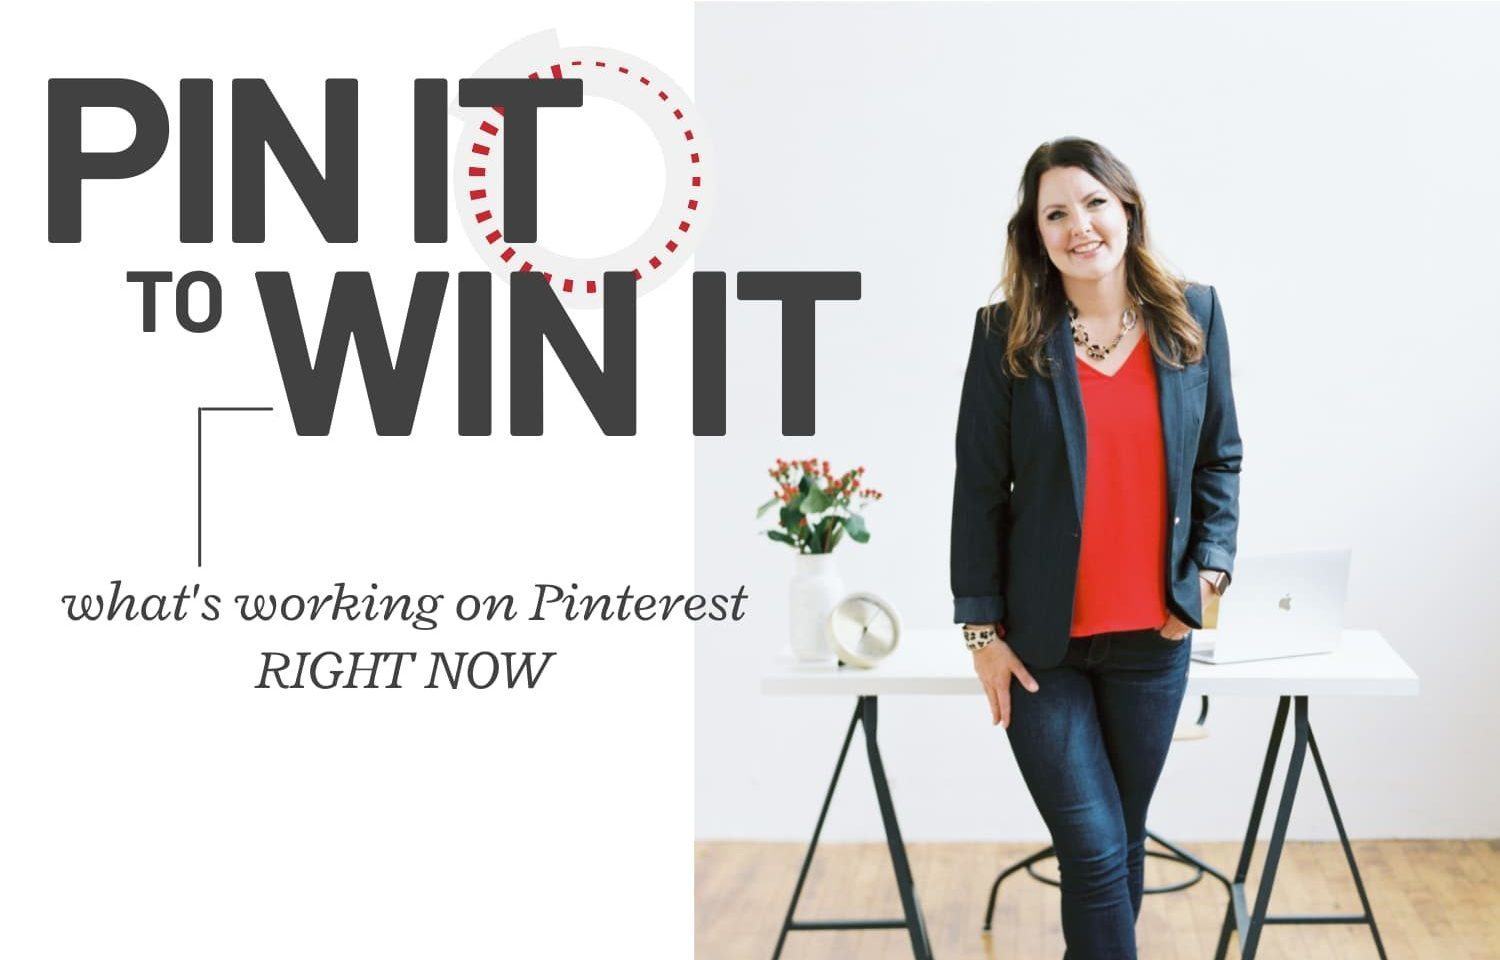 """fashionable woman standing - text """"pin it to win it - what's working on pinterest right now""""."""